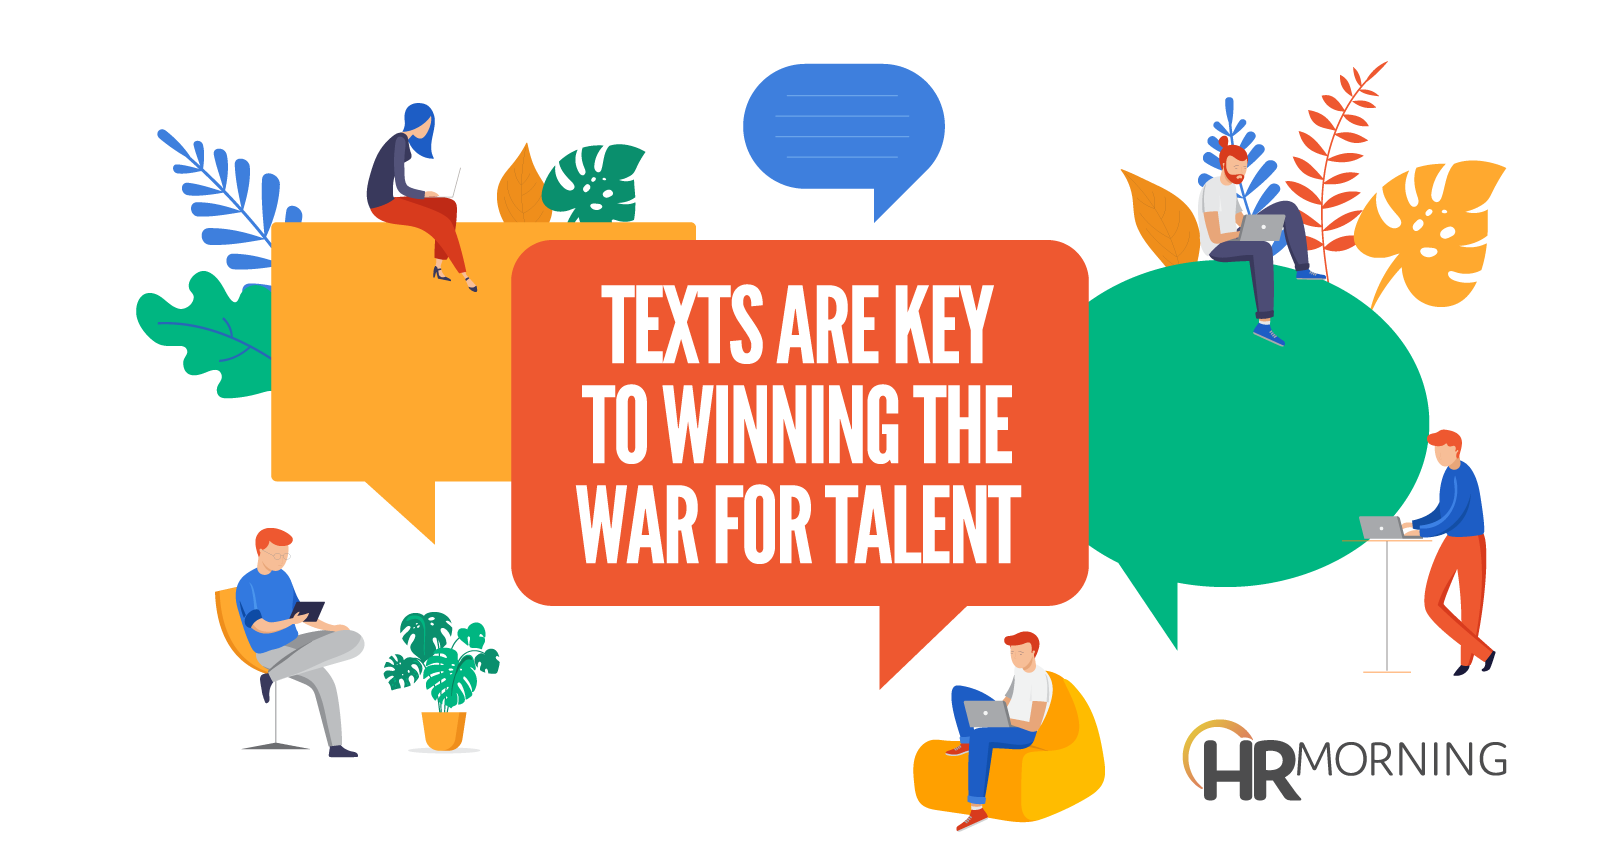 texts are key to winning the war for talent